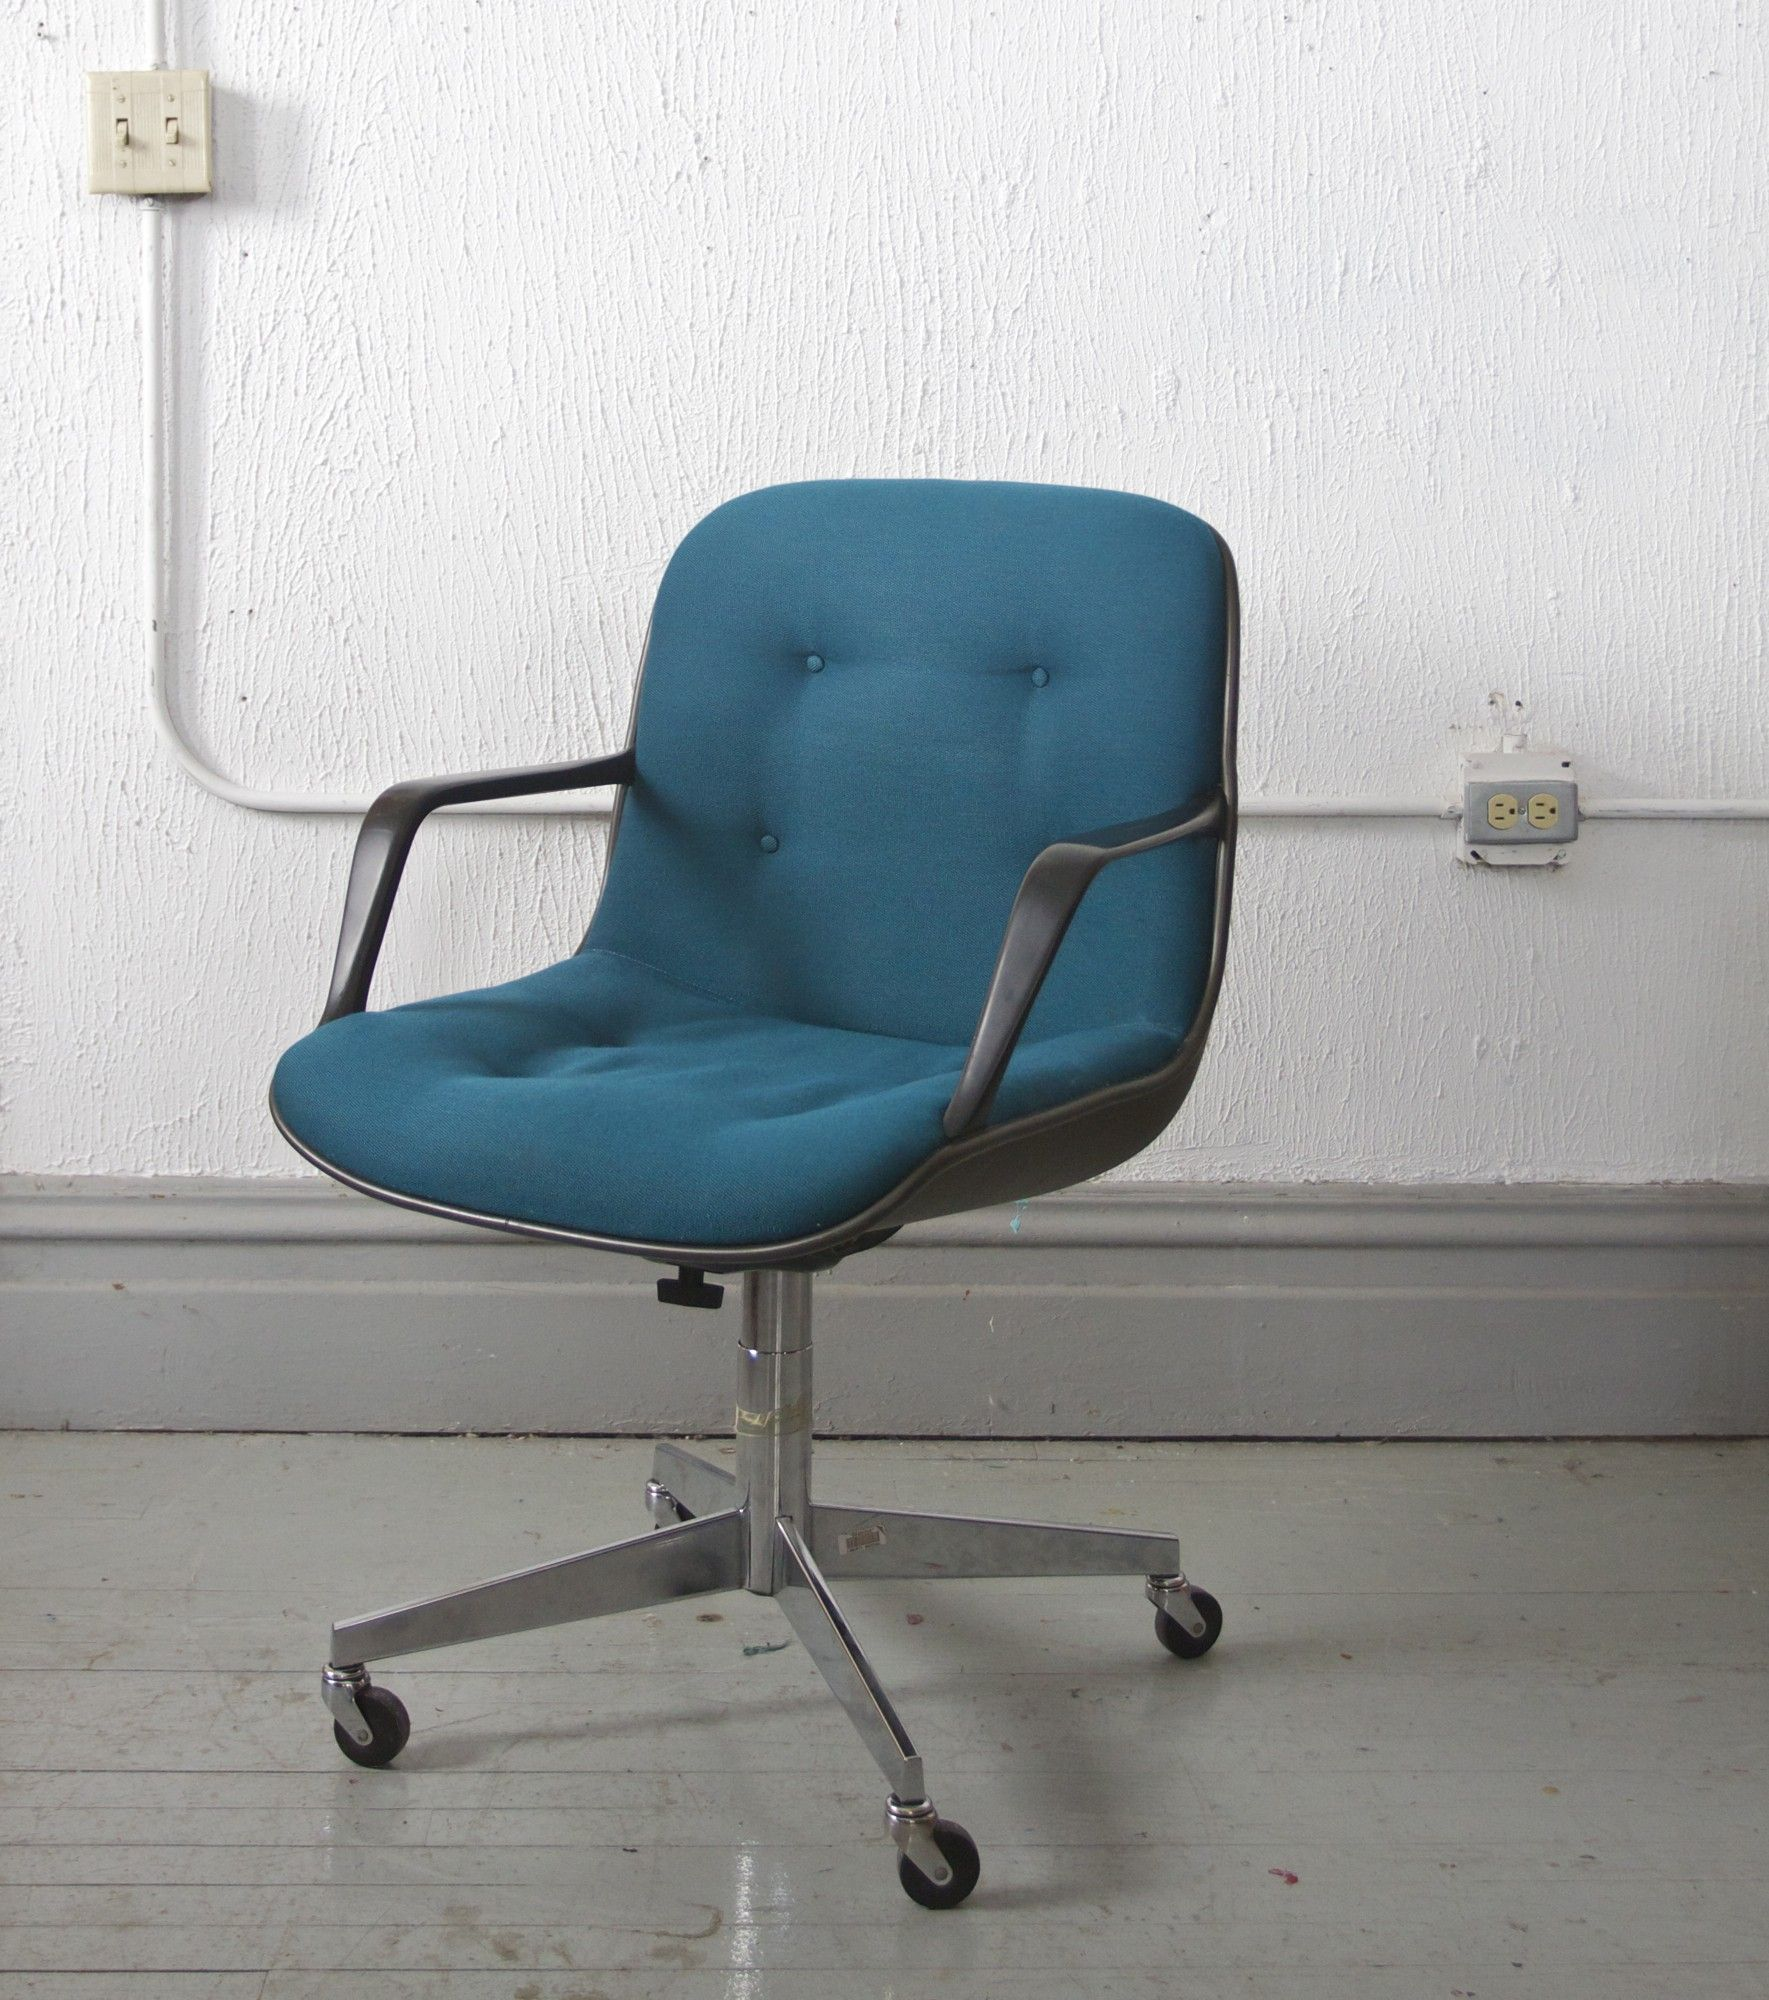 steelcase vintage chair kids swing pin by furnishly com on chicago listings pinterest office 125 http catalog